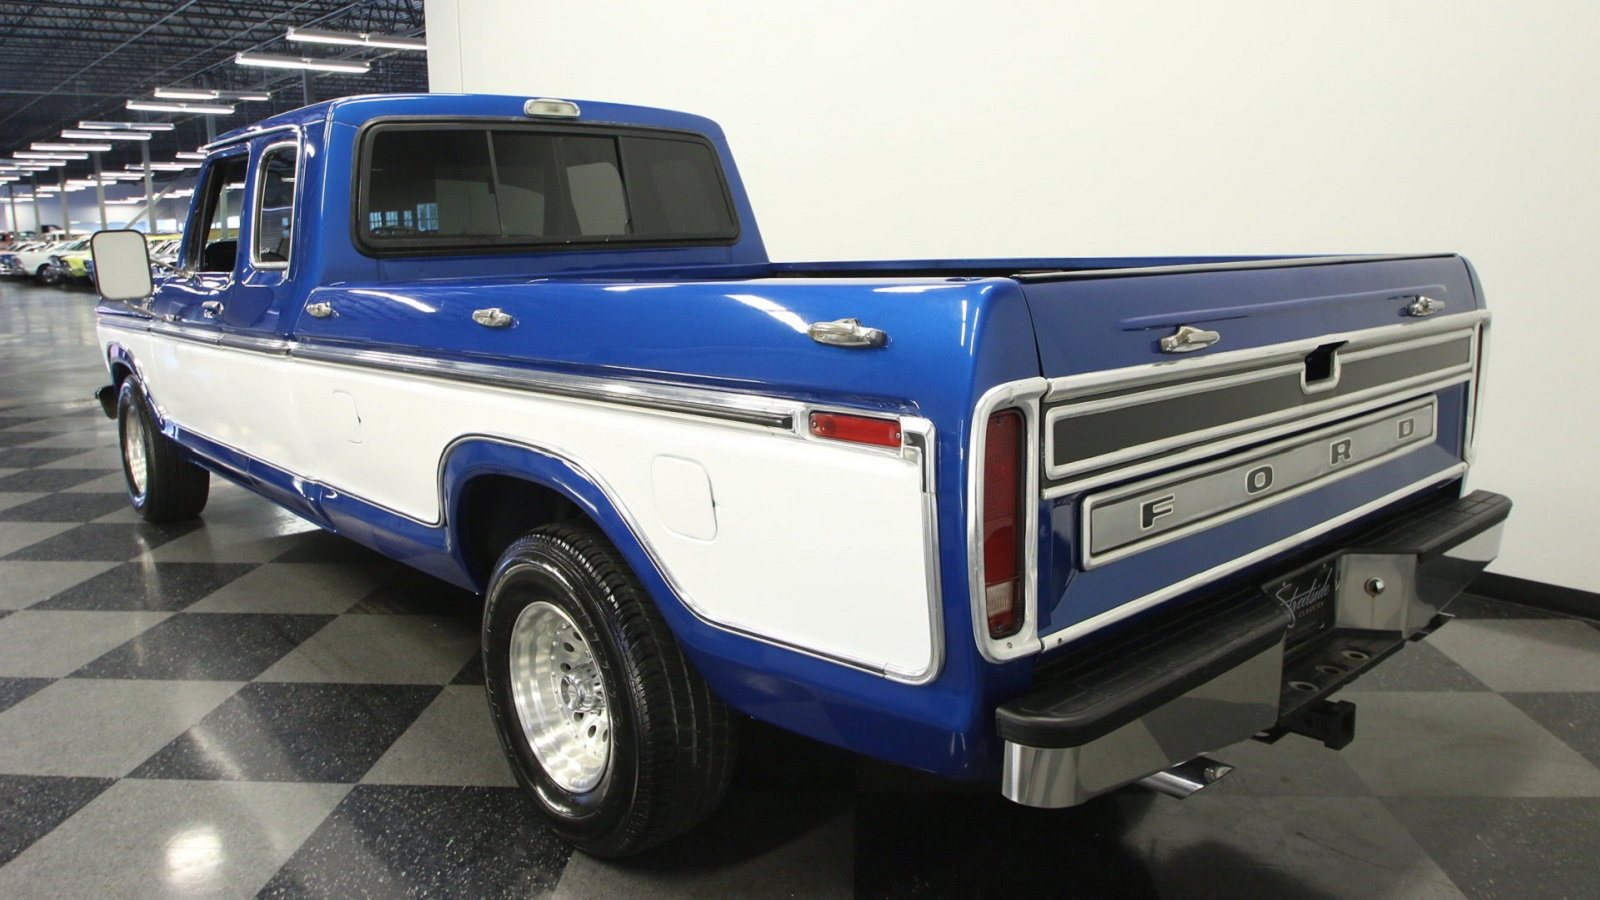 1977 Ford F-150 Super Cab Is One Smooth Cruiser